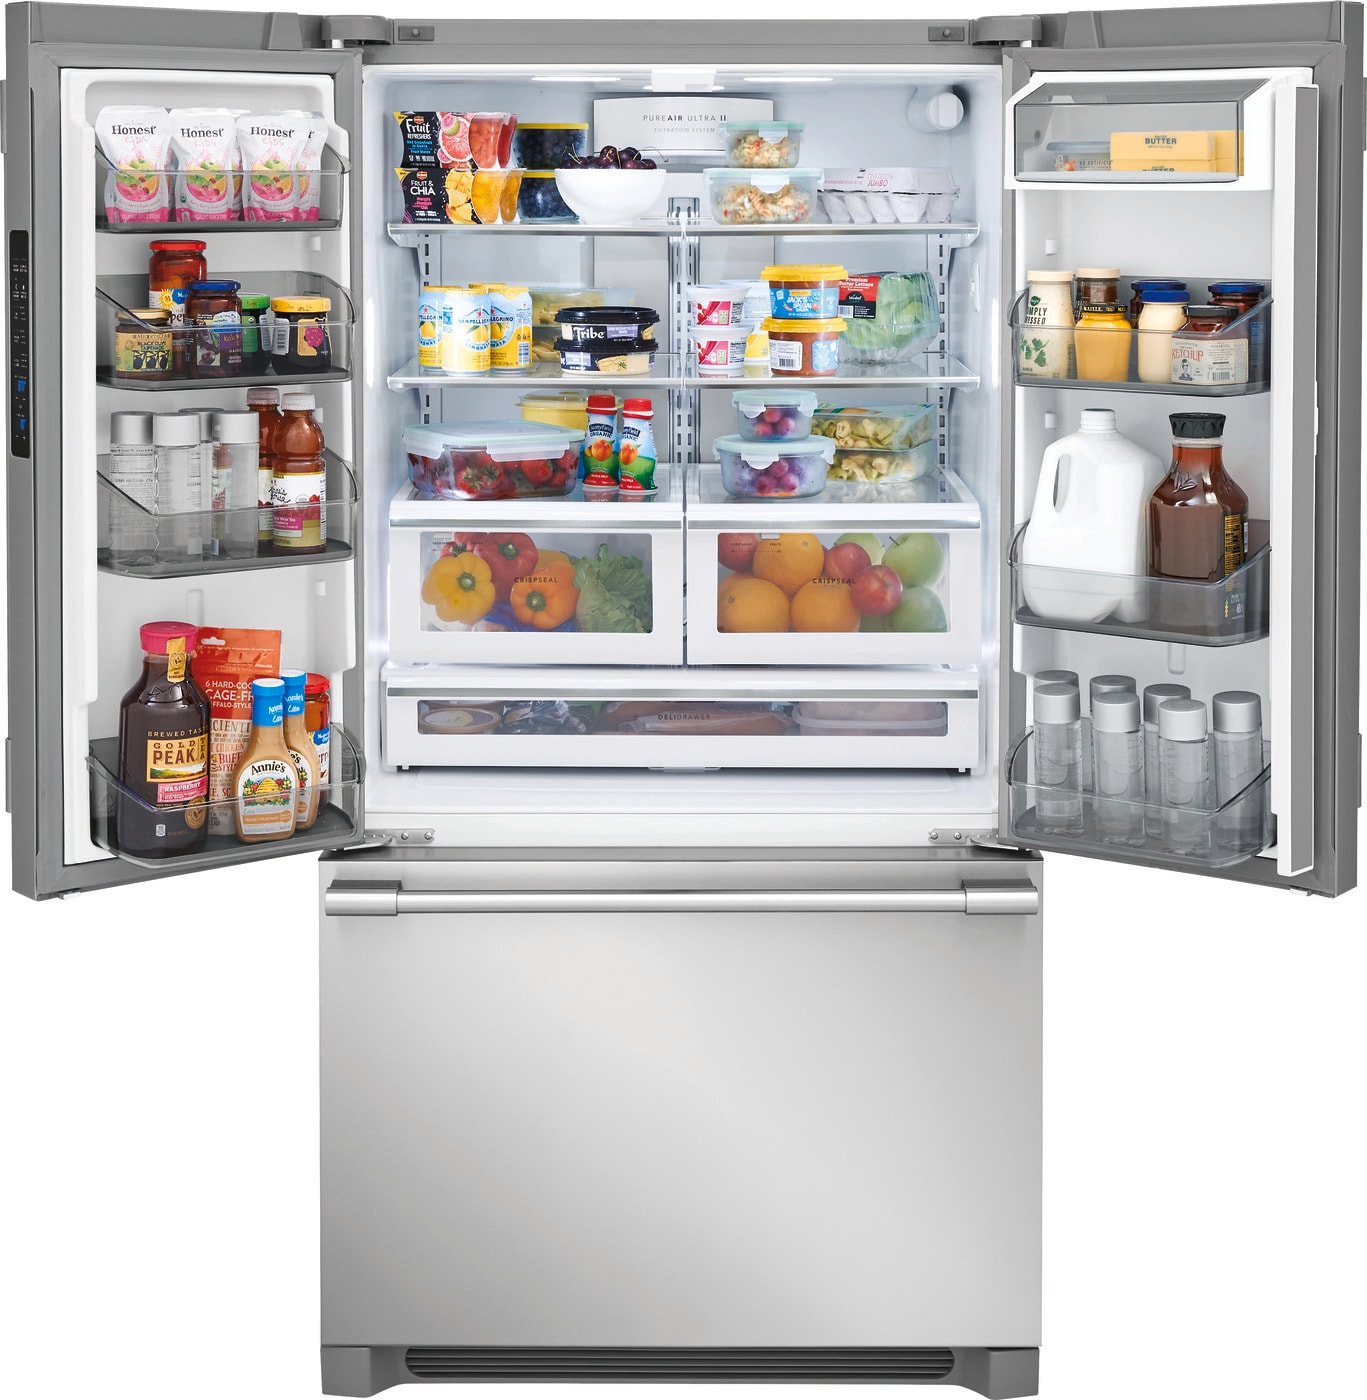 22.3 Cu. Ft. French Door Counter-Depth Refrigerator Stainless Steel FPBG2278UF